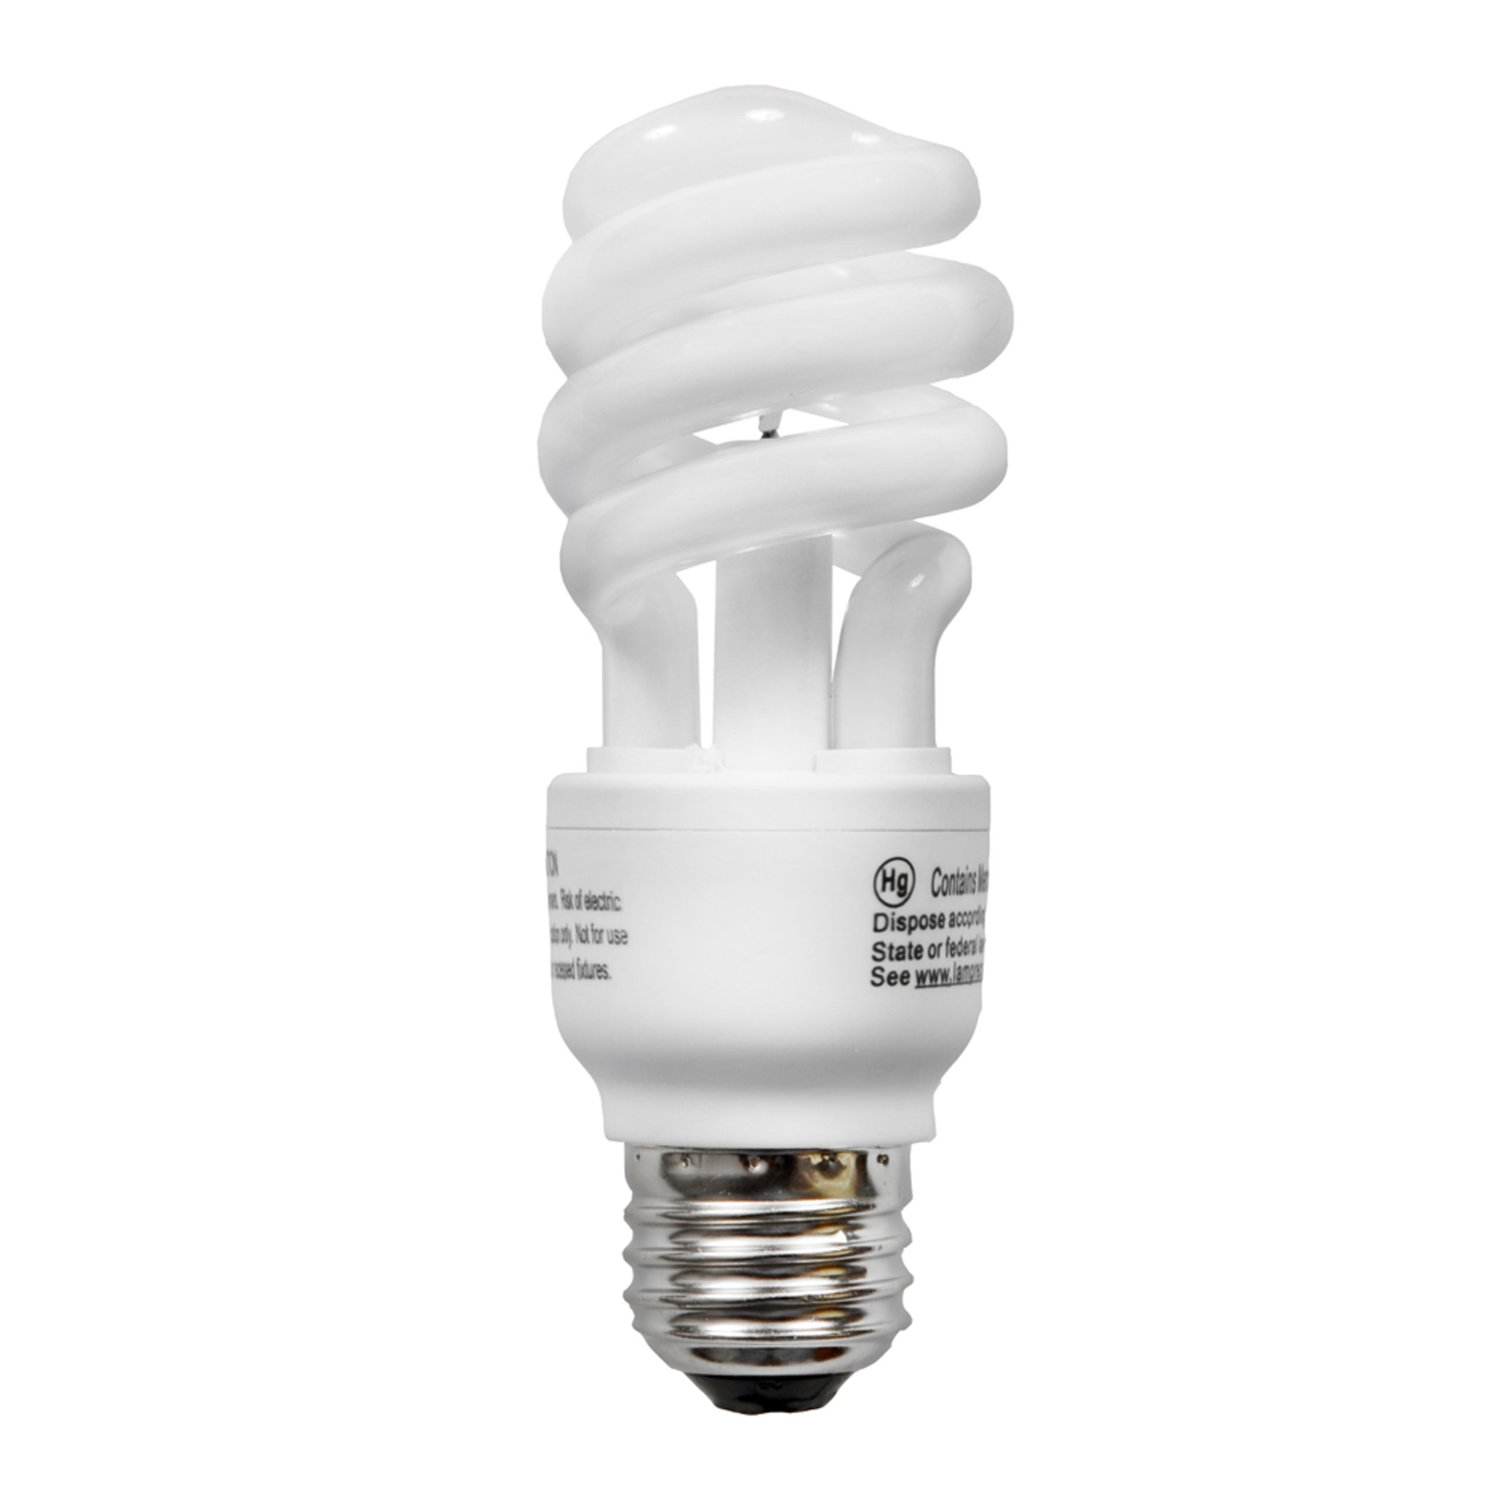 Cfl Bulbs Eco Friendly Lighting Solutions For Your Home